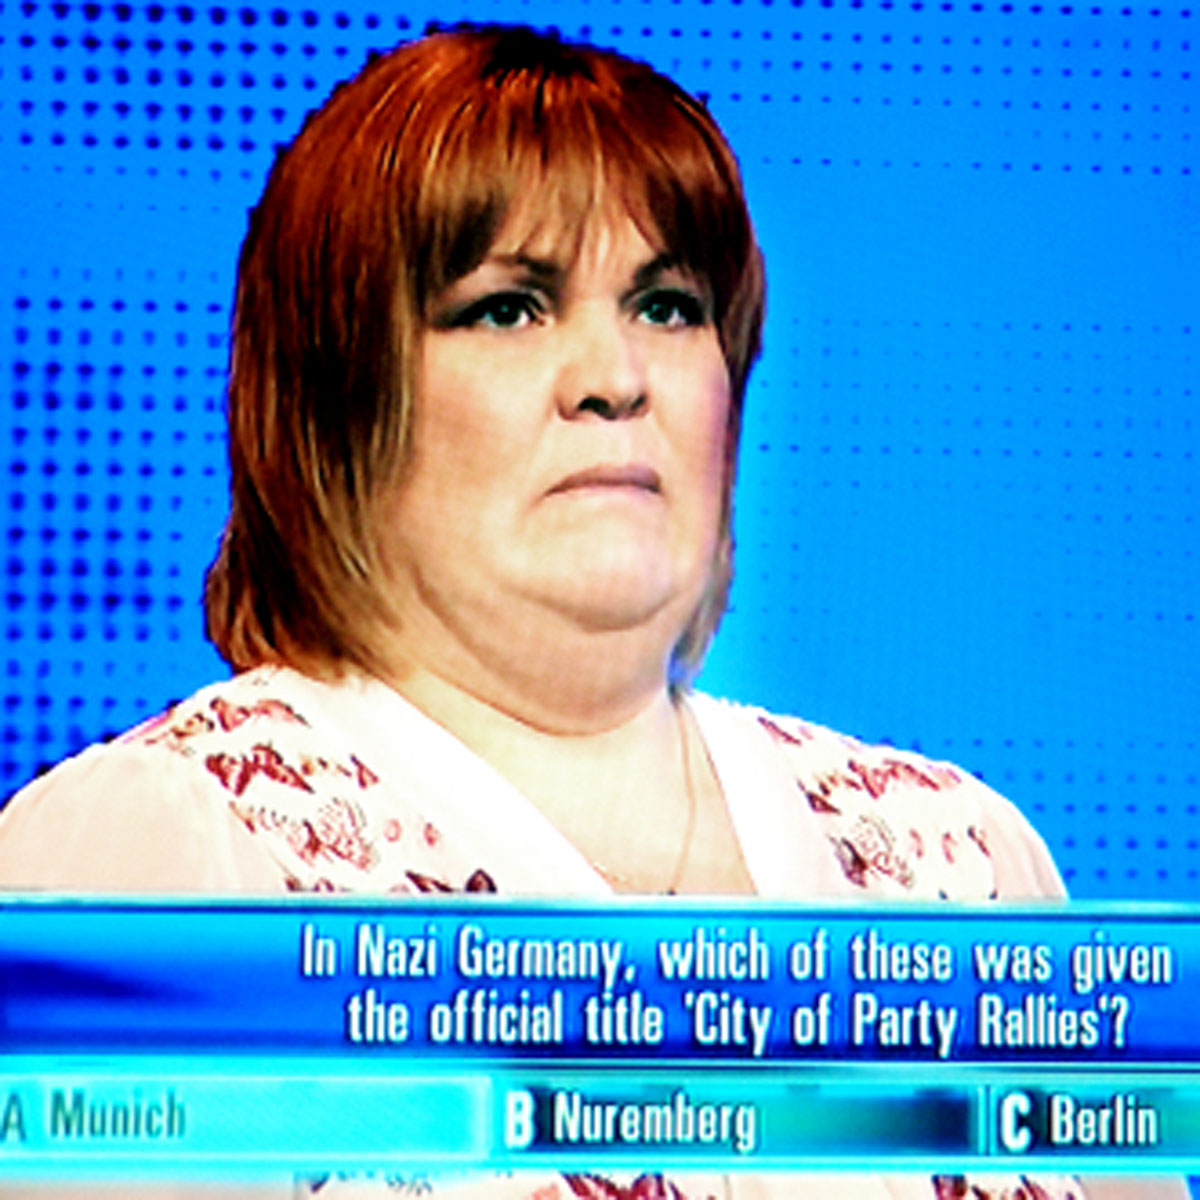 Joanne Nutter took part in TV quiz show The Chase